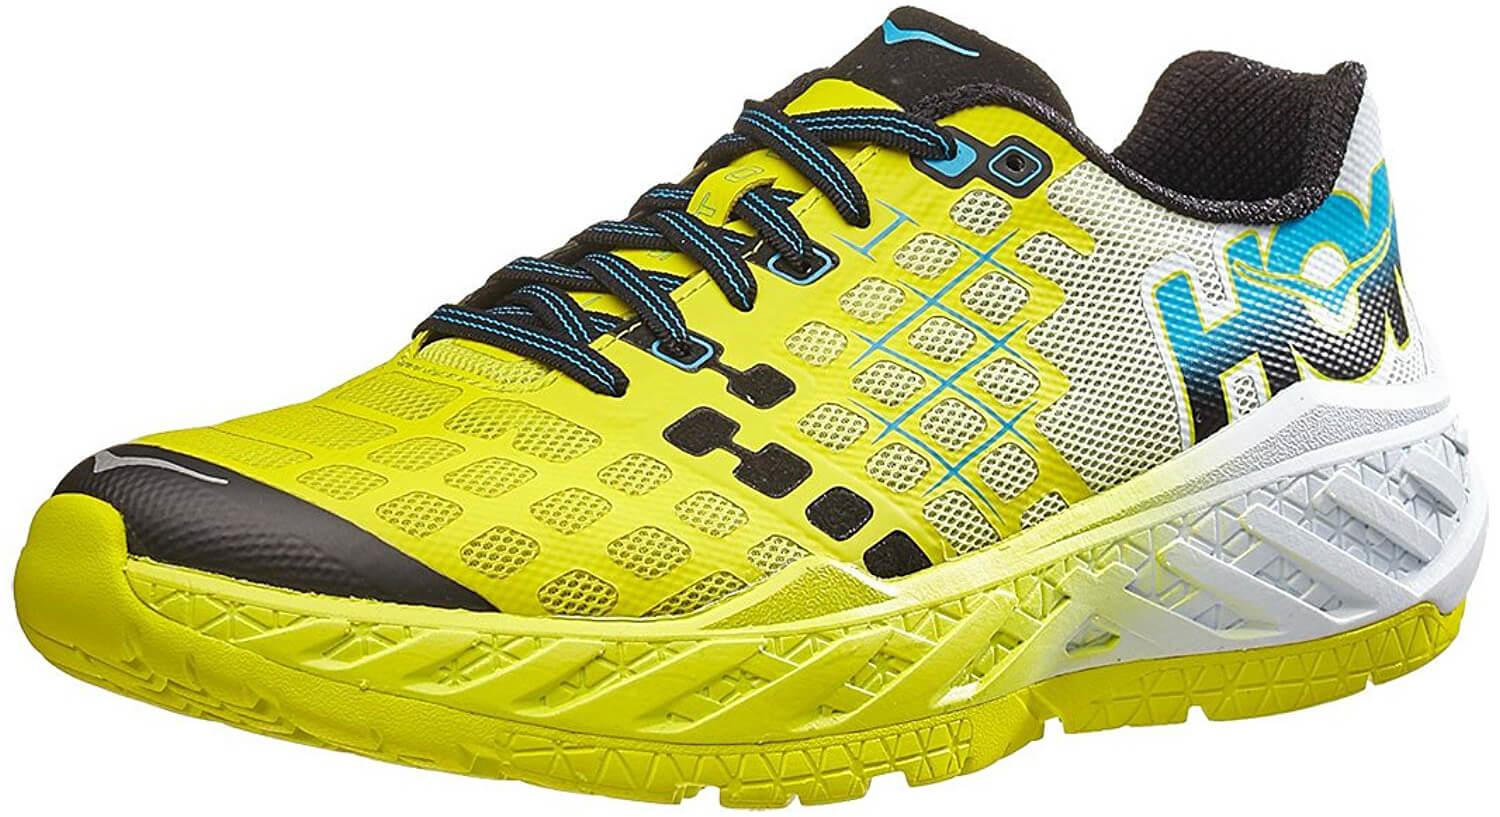 Hoka One One Clayton. Crossed